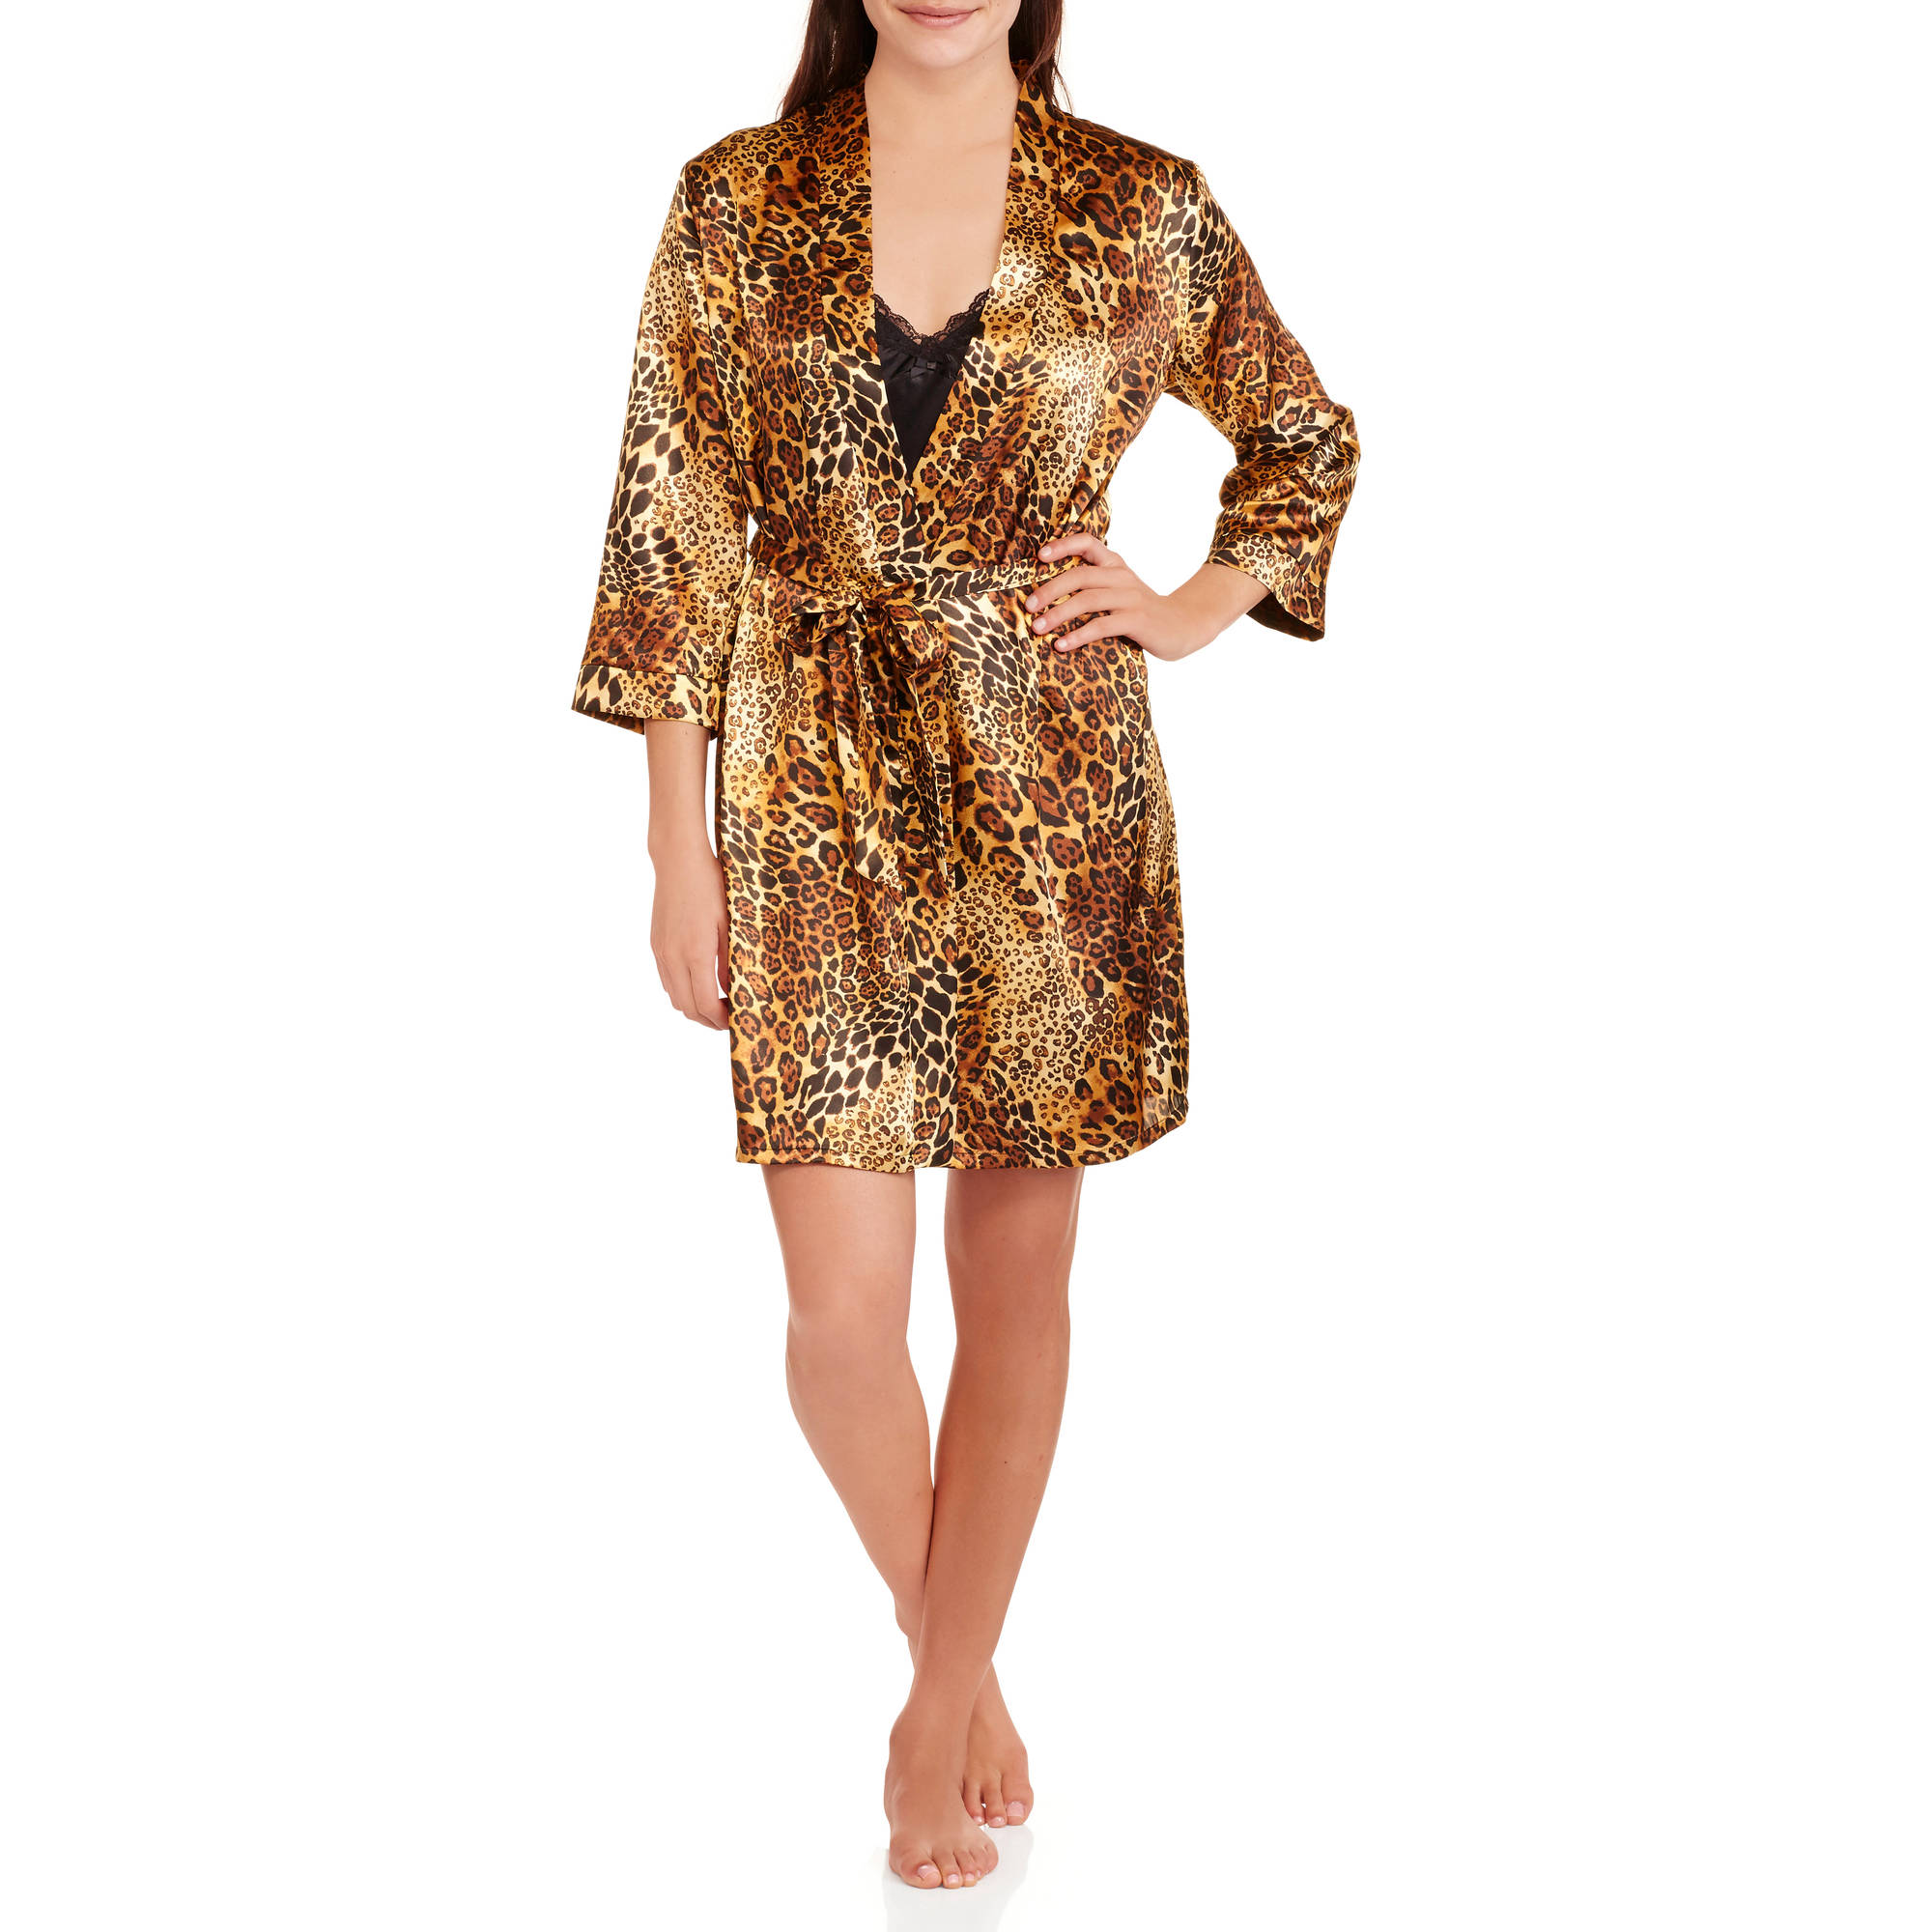 Secret treasures all sleepwear robes womens satin chemise and robe set s 3x price fandeluxe Gallery